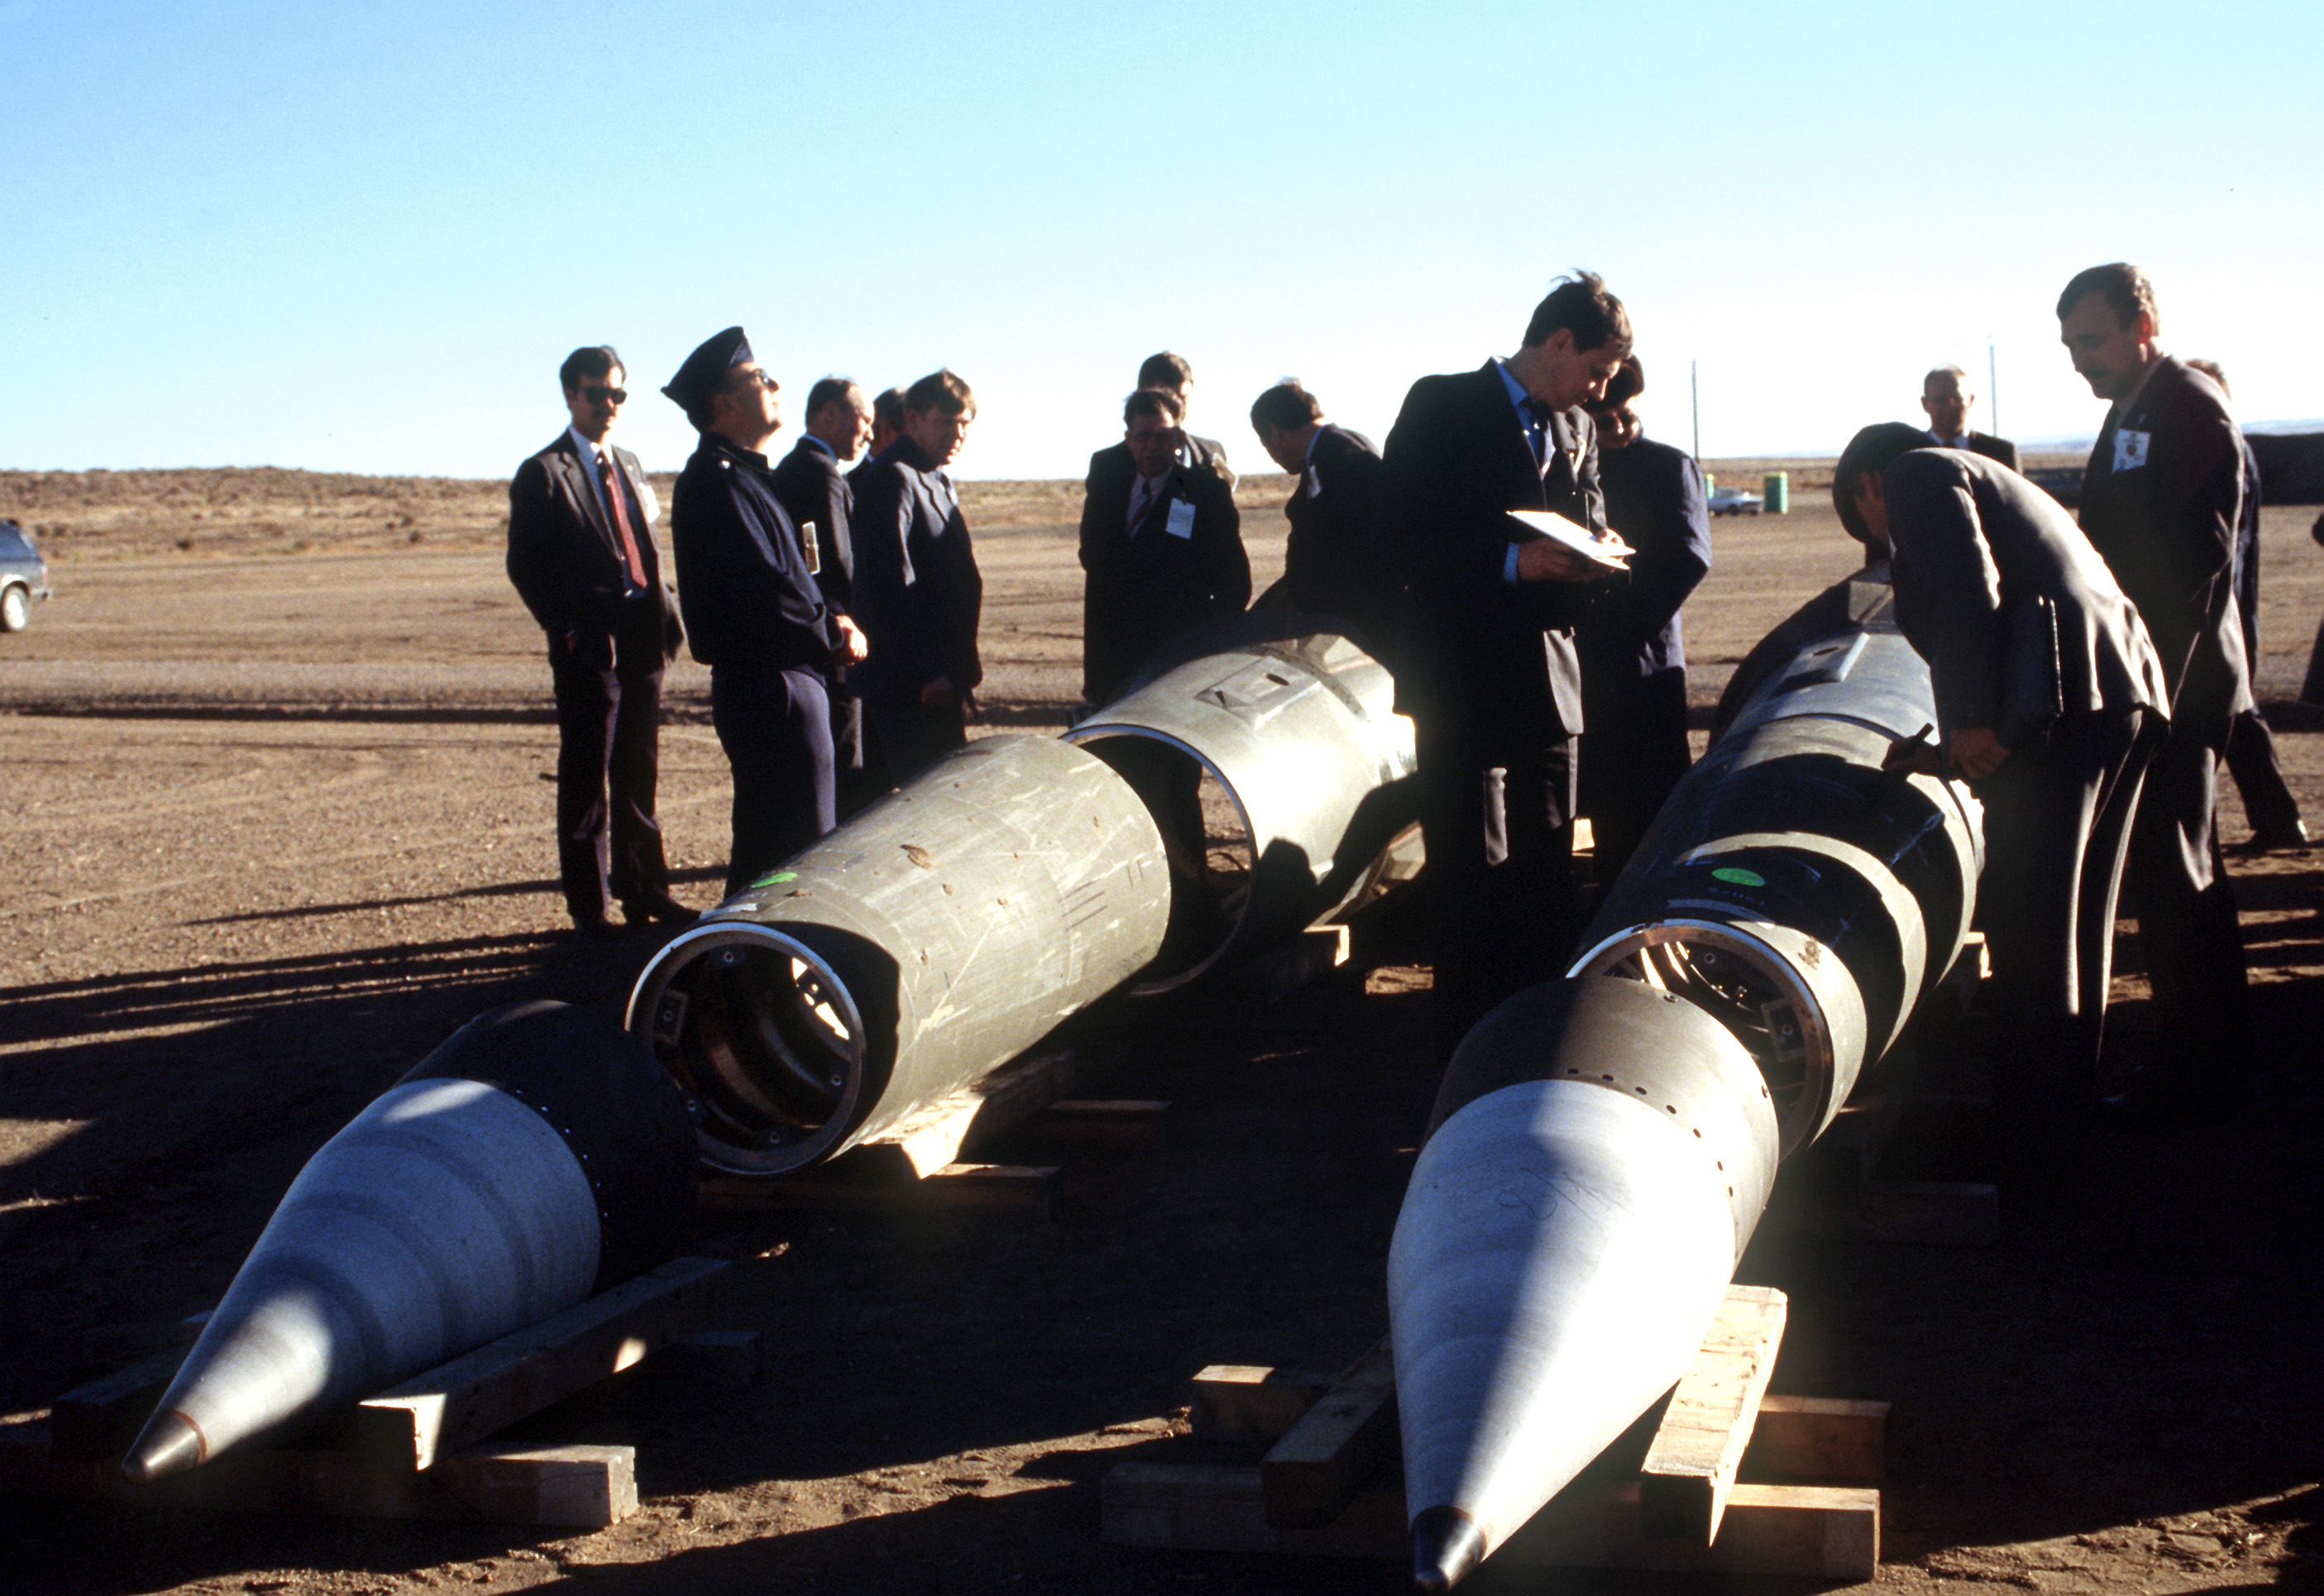 Sovjet inspectors inspecting the Pershing II missiles in 1989 under supervision of Americans as part of the INF-Treaty